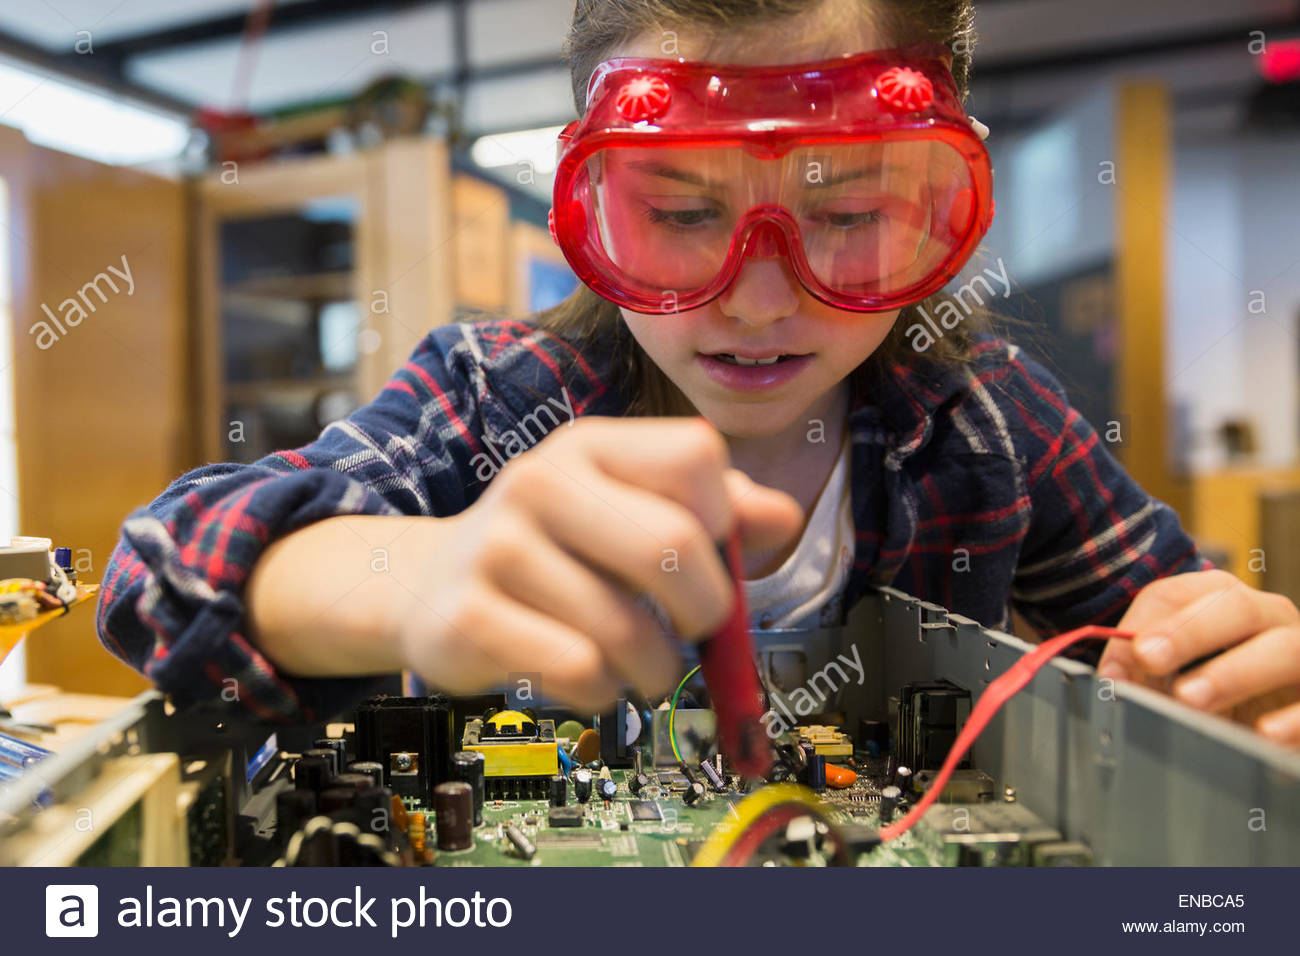 Girl goggles assembling electronics circuit at science center - Stock Image